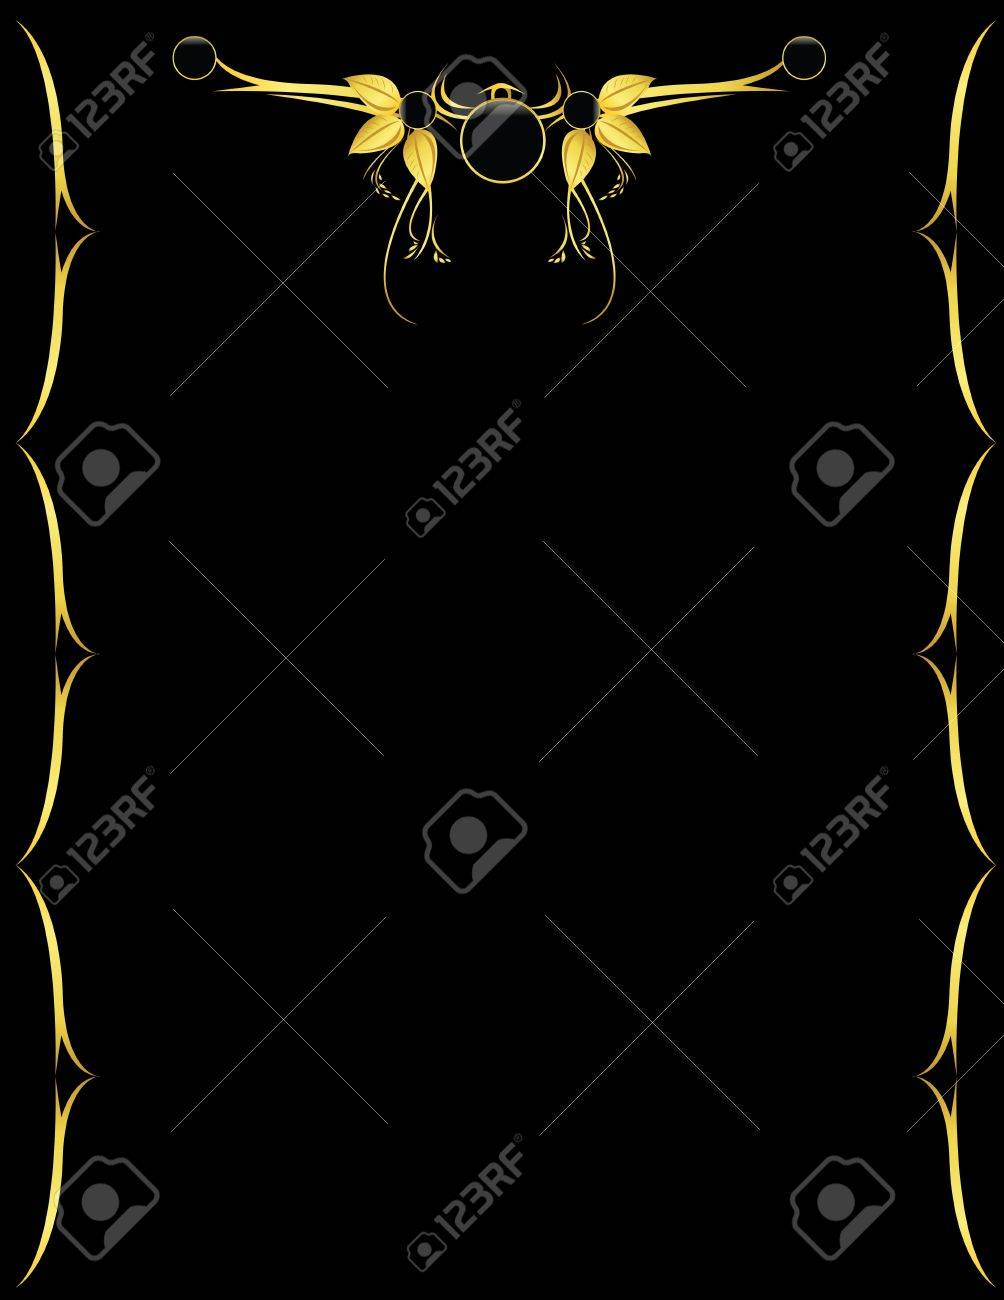 Gold design on a black vertical page Stock Photo - 3464178